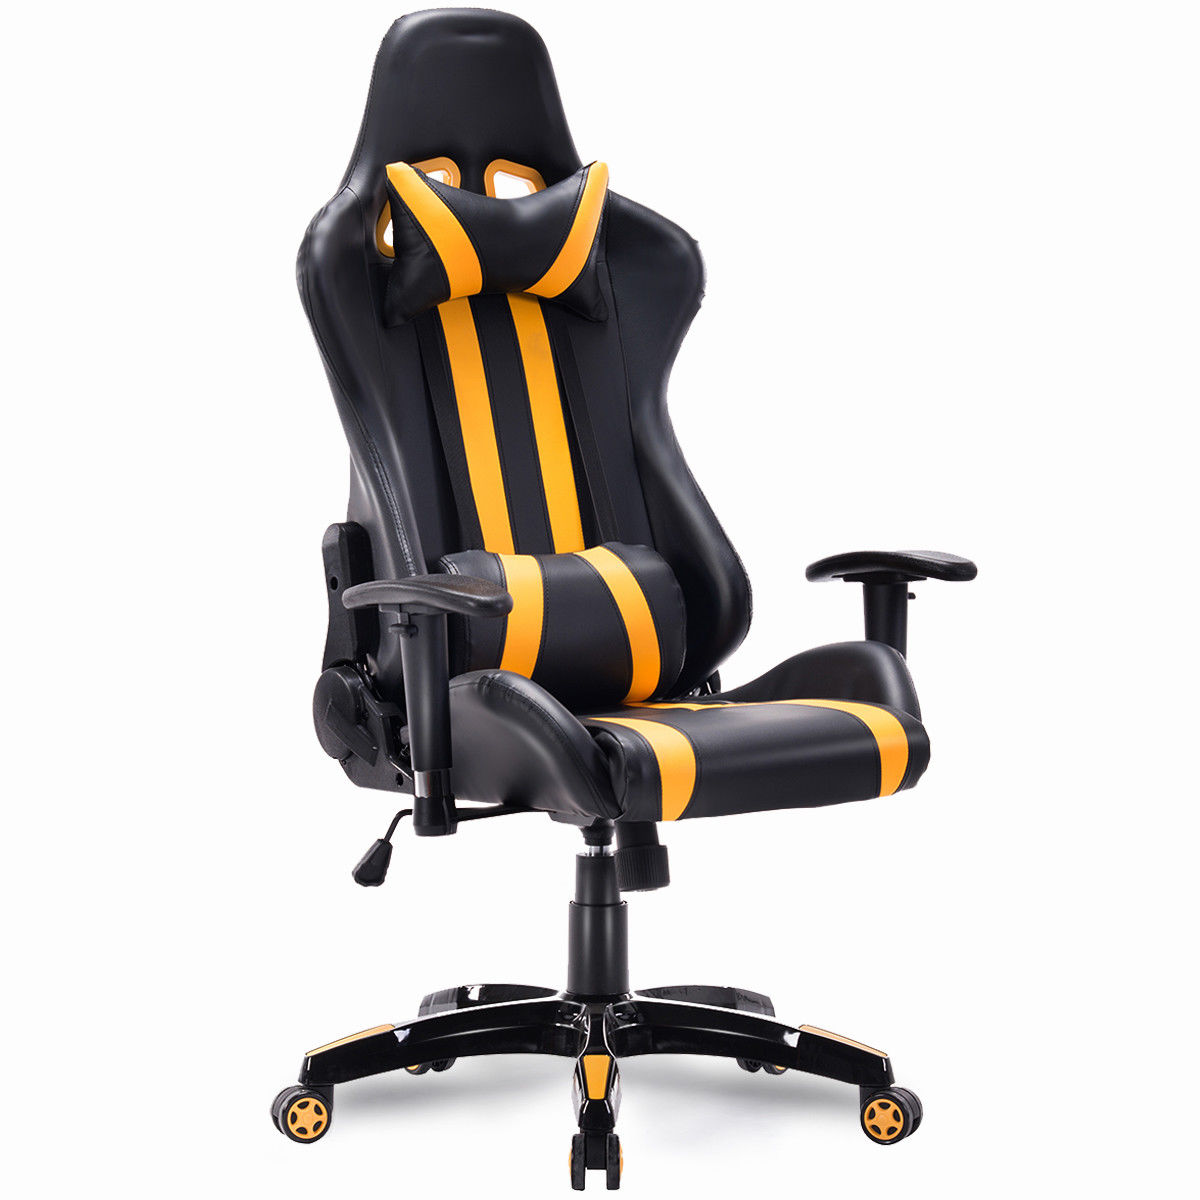 Giantex High Back Executive Racing Style Gaming Chair Office Computer Reclining Chair Modern Offfice Furniture HW55211YE-in Office Chairs from Furniture on AliExpress